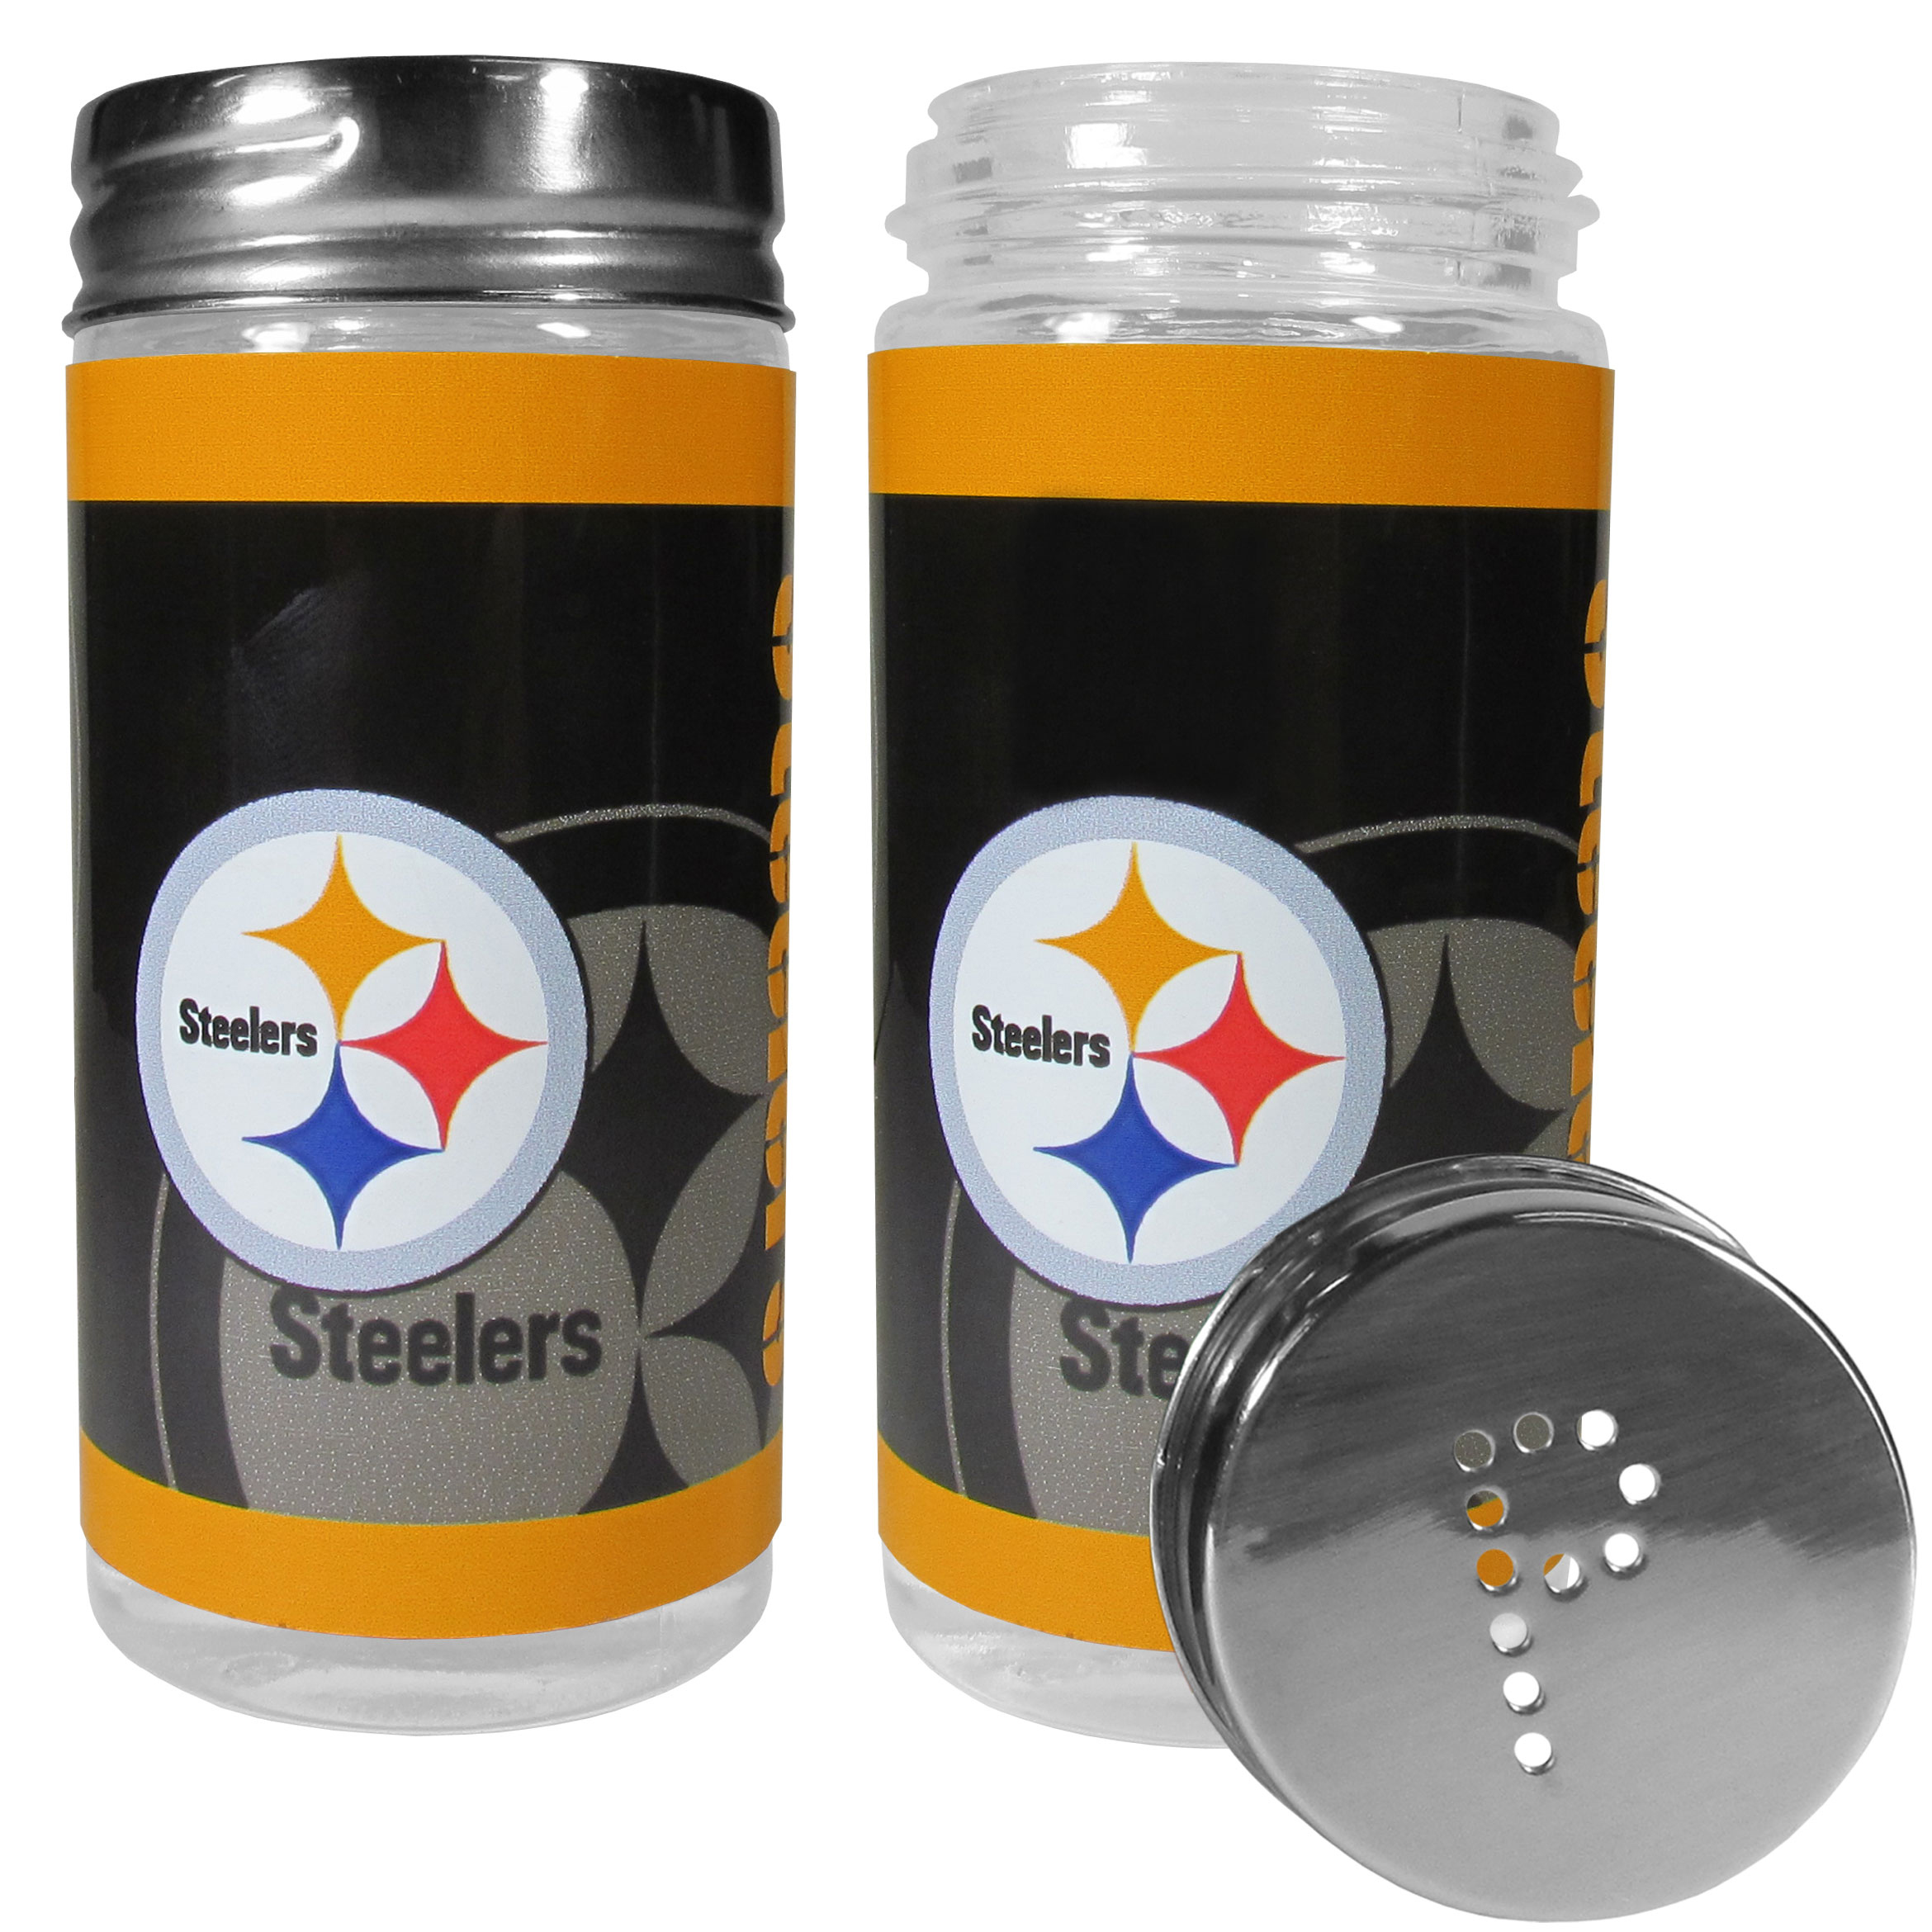 Pittsburgh Steelers Tailgater Salt and Pepper Shakers - No tailgate party is complete without your Pittsburgh Steelers salt & pepper shakers featuring bright team graphics. The glass shakers are 3.75 inches tall and the screw top lids have holes that spell out P and S. These team shakers are a great grill accessory whether you are barbecuing on the patio, picnicing or having a game day party.